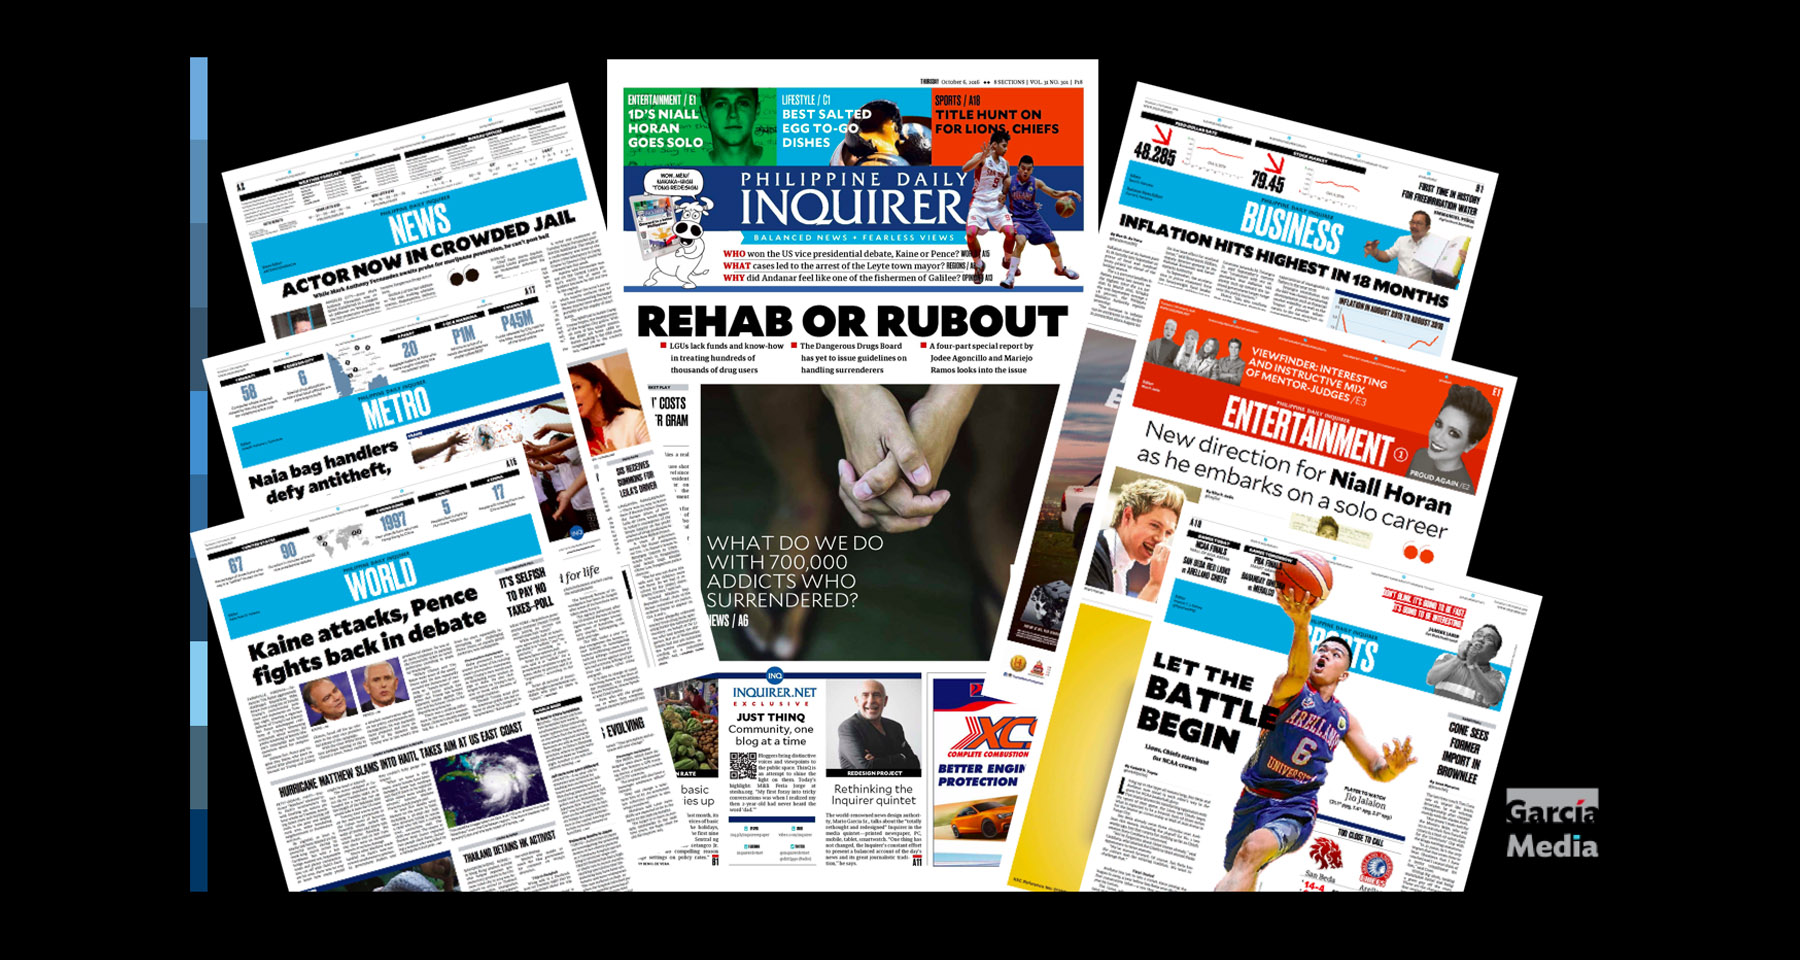 Philippine Daily Inquirer relaunch is model for cross-platform marketing success